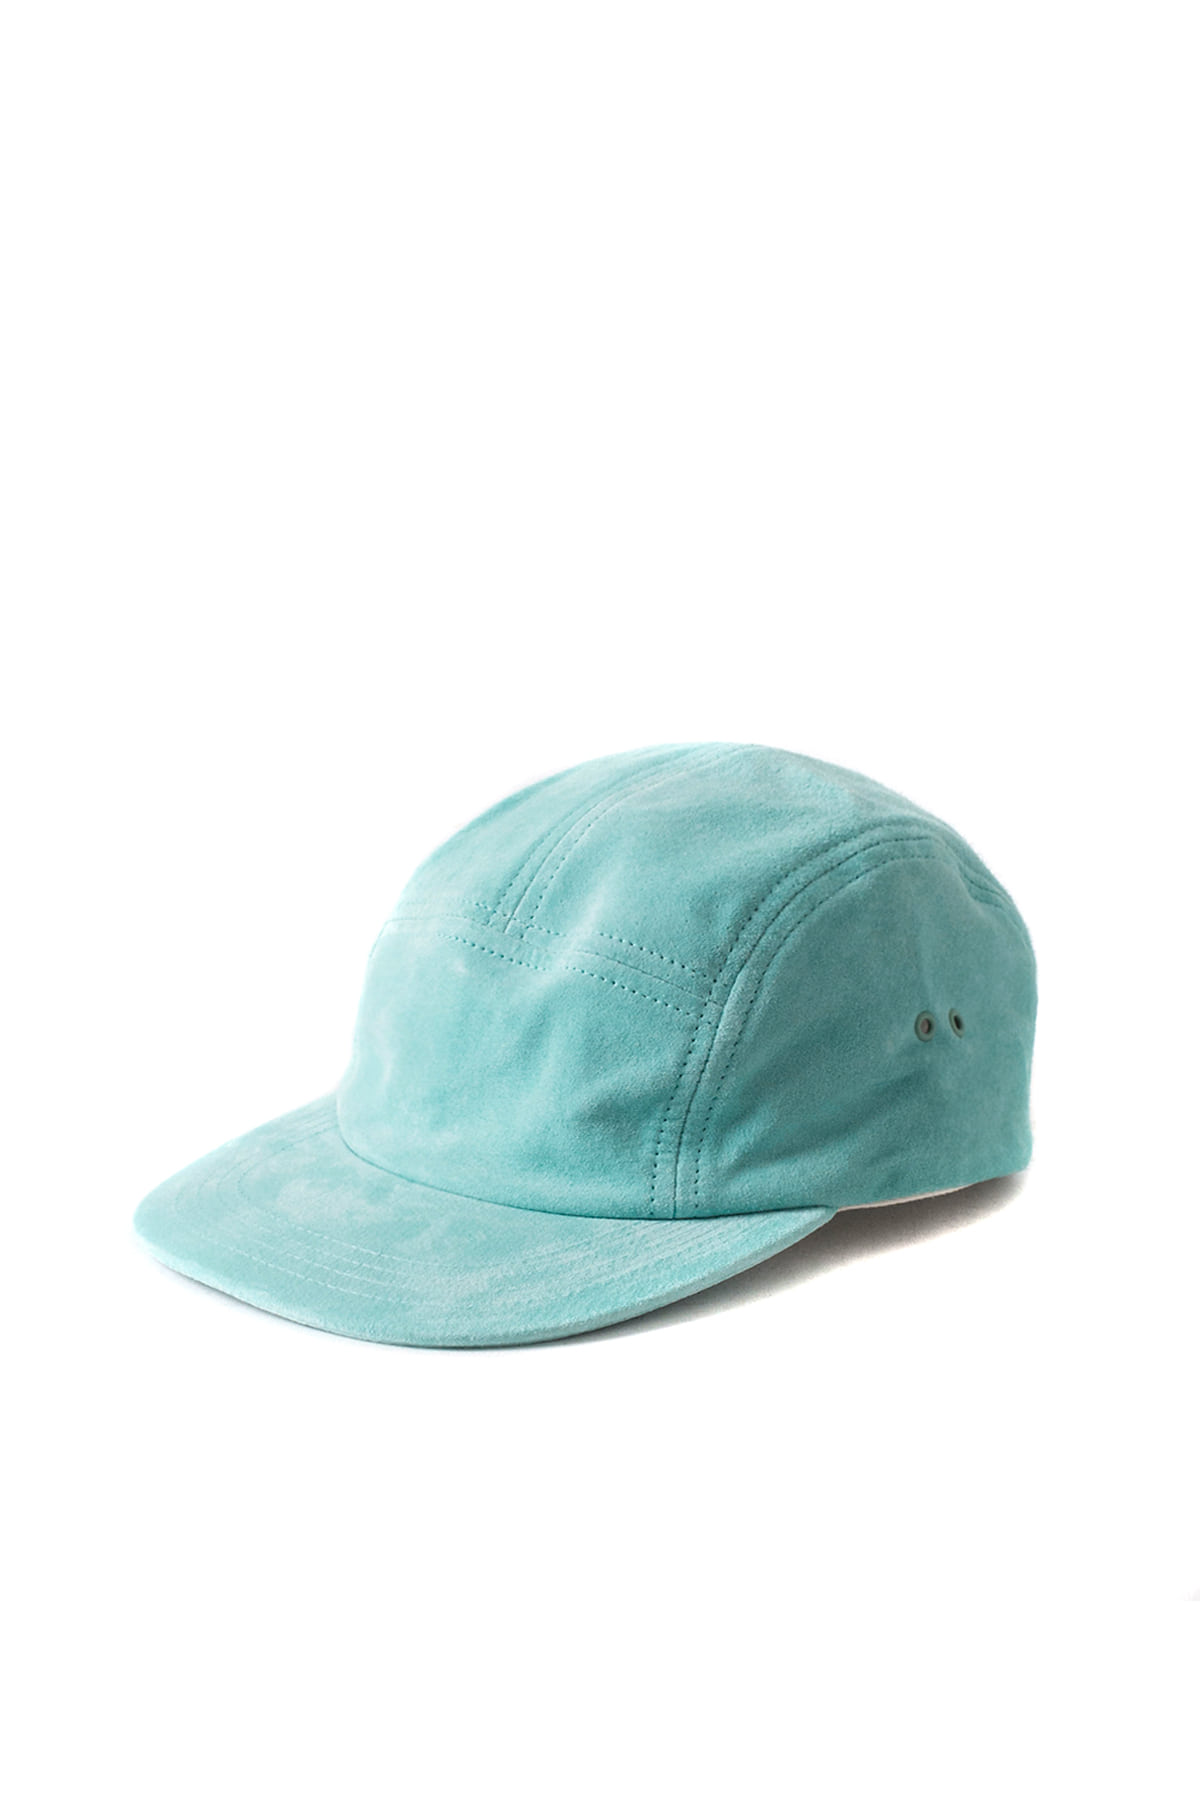 Hender Scheme : Water Proof Pig Jet Cap (Mint)